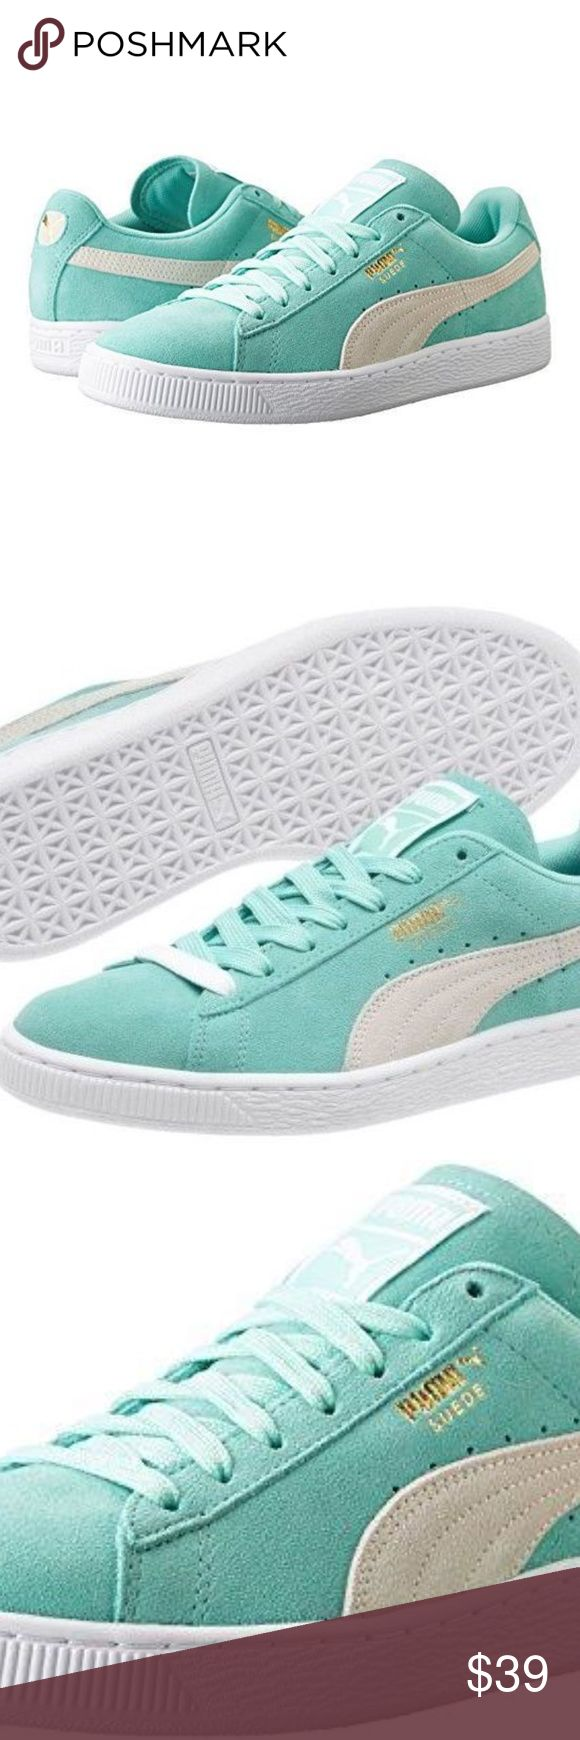 PUMA Suede Classic Women's Sneakers holiday white PUMA Suede Classic Women's Sneakers holiday white Puma Shoes Sneakers